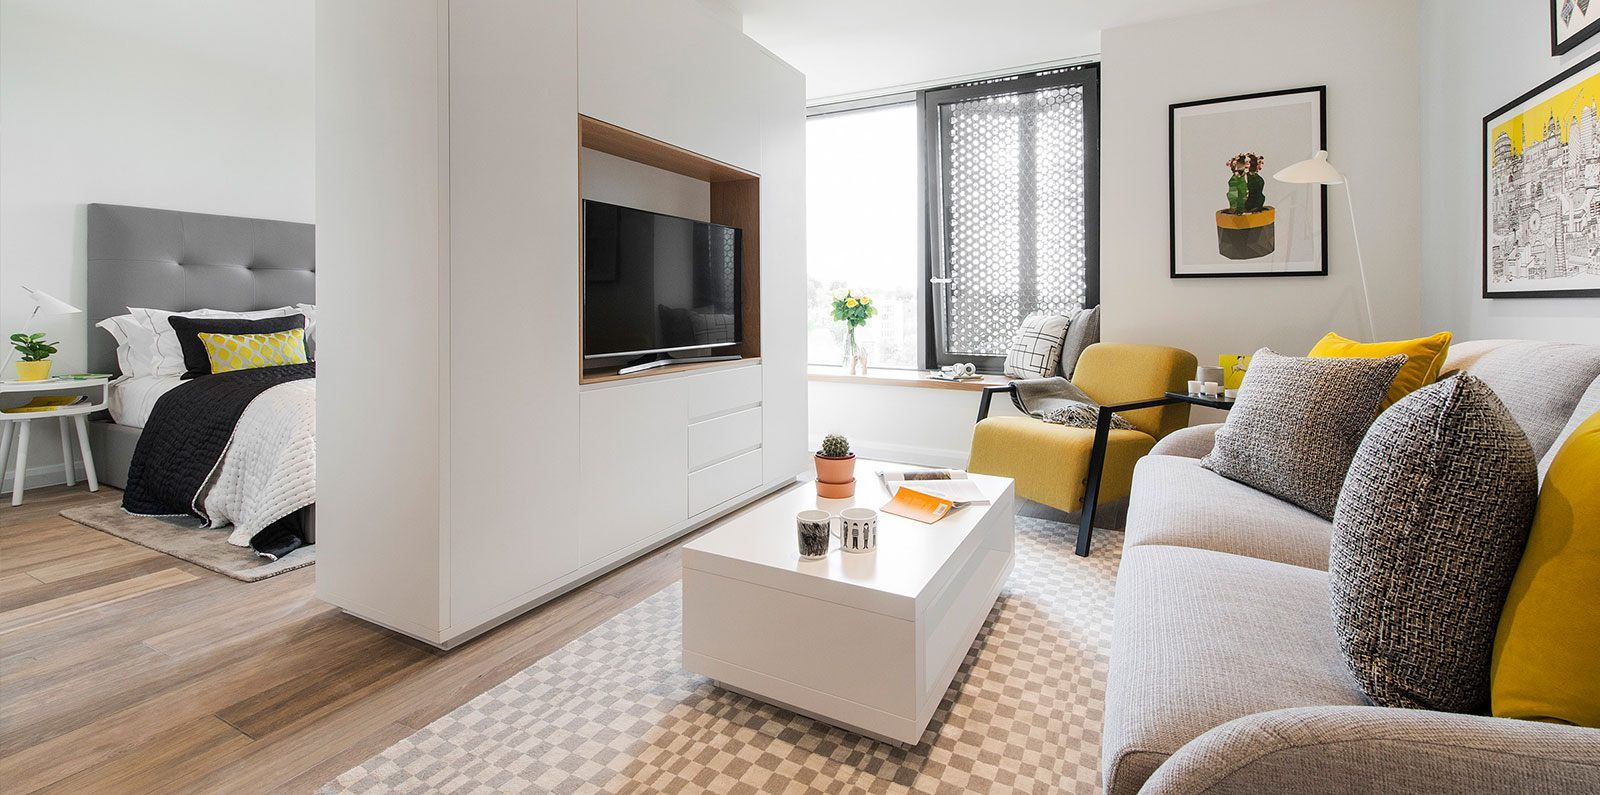 Vantage Point Studio 2 Essential Living In 2020 Small